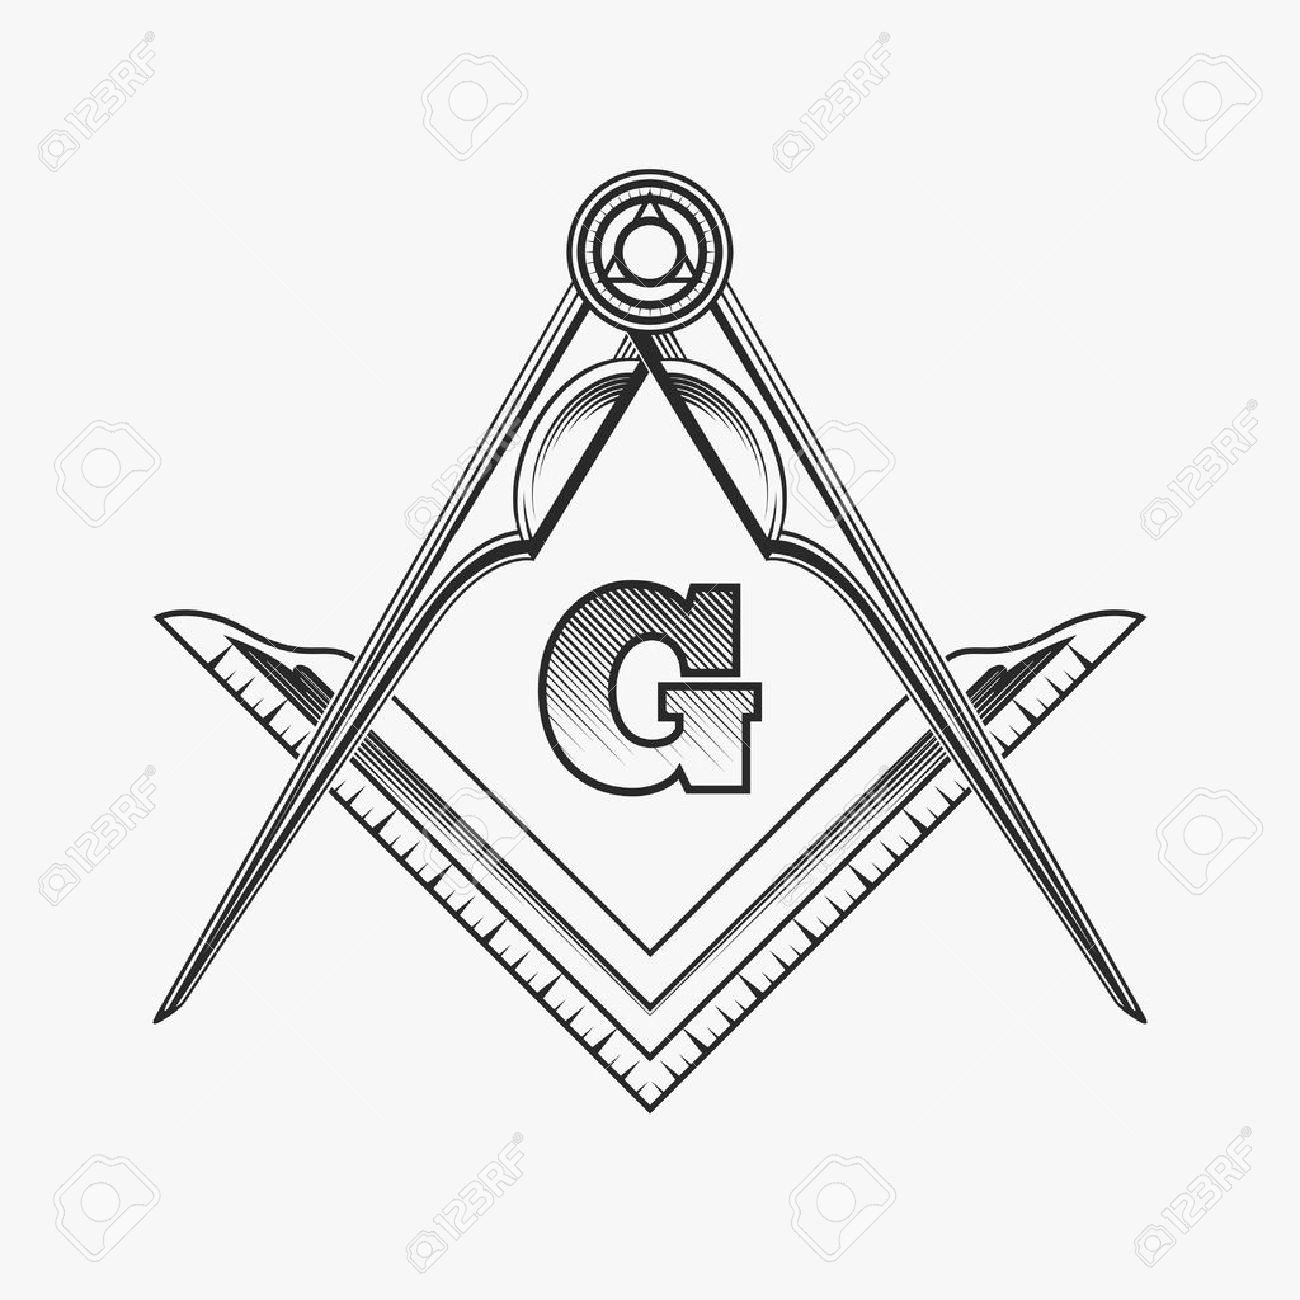 Freemasonry emblem icon with G great architect  Mystic occult